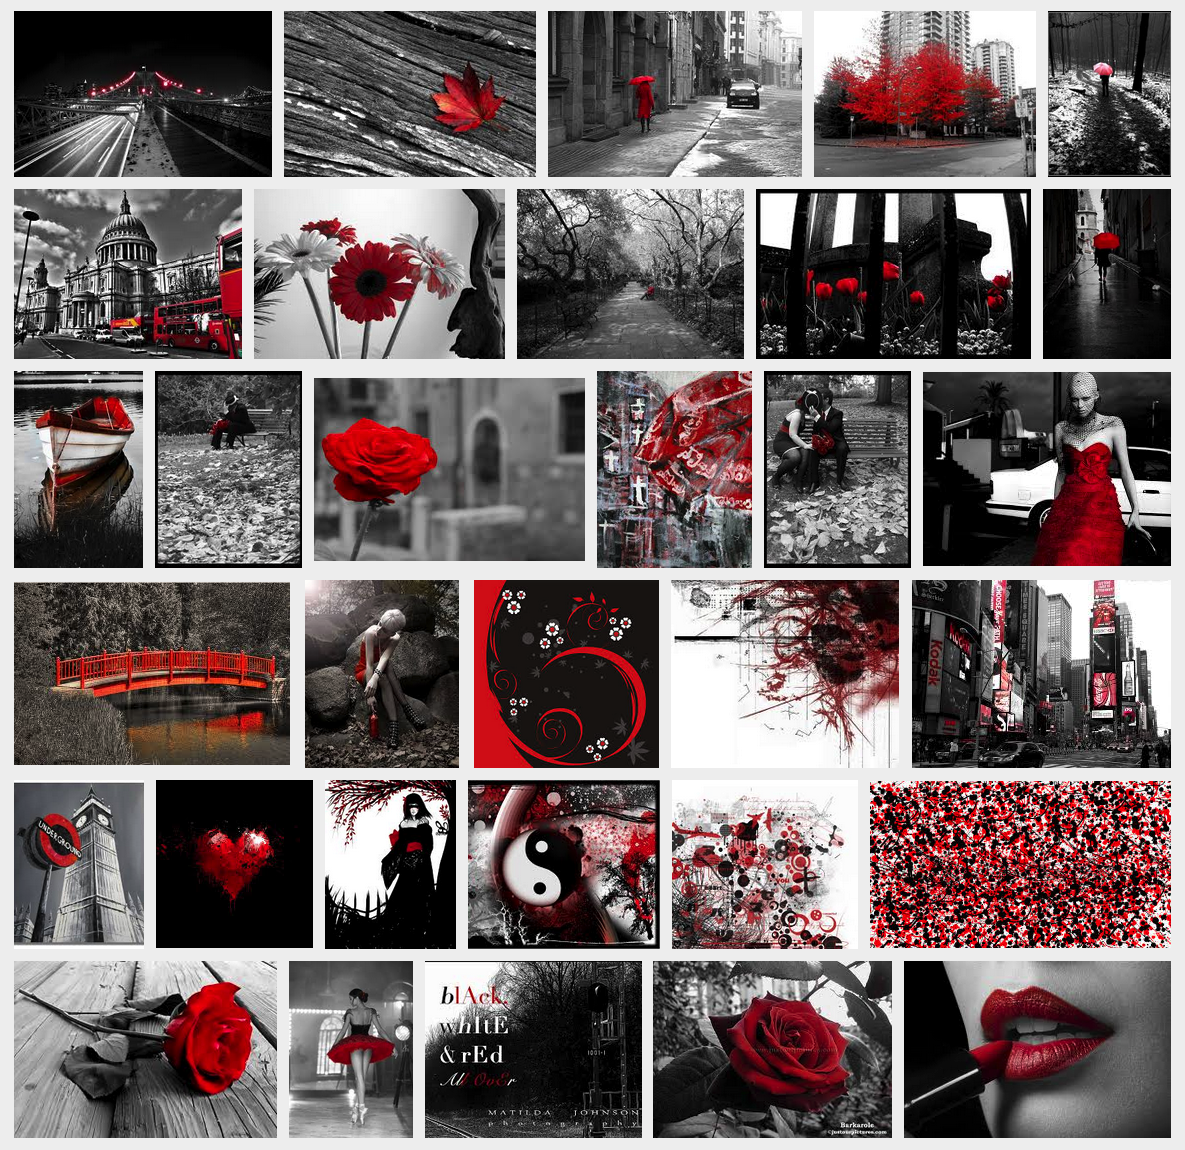 reach-style-guide-black-white-red-photos